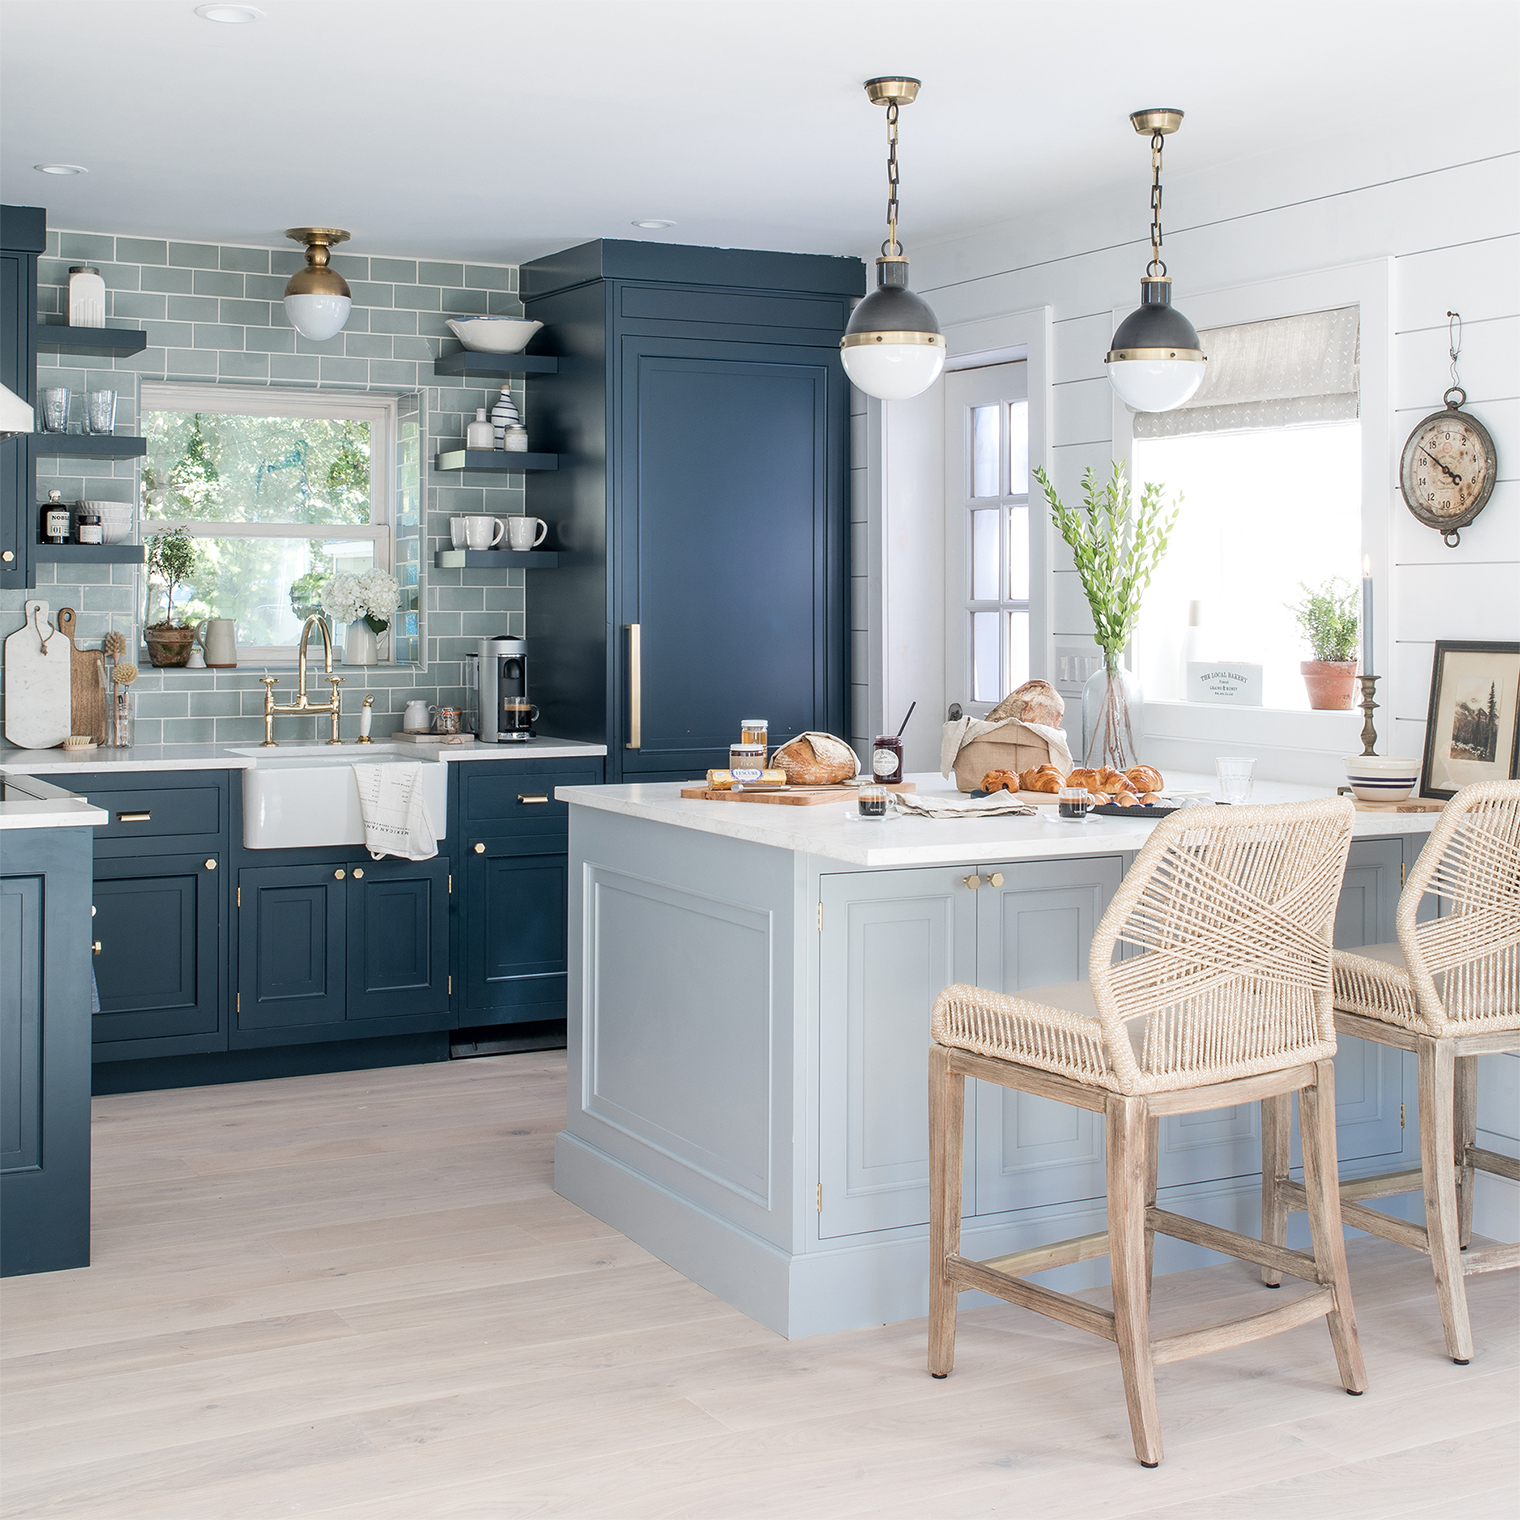 Elegant Beach House Decor: Our Beach House Kitchen: The Reveal